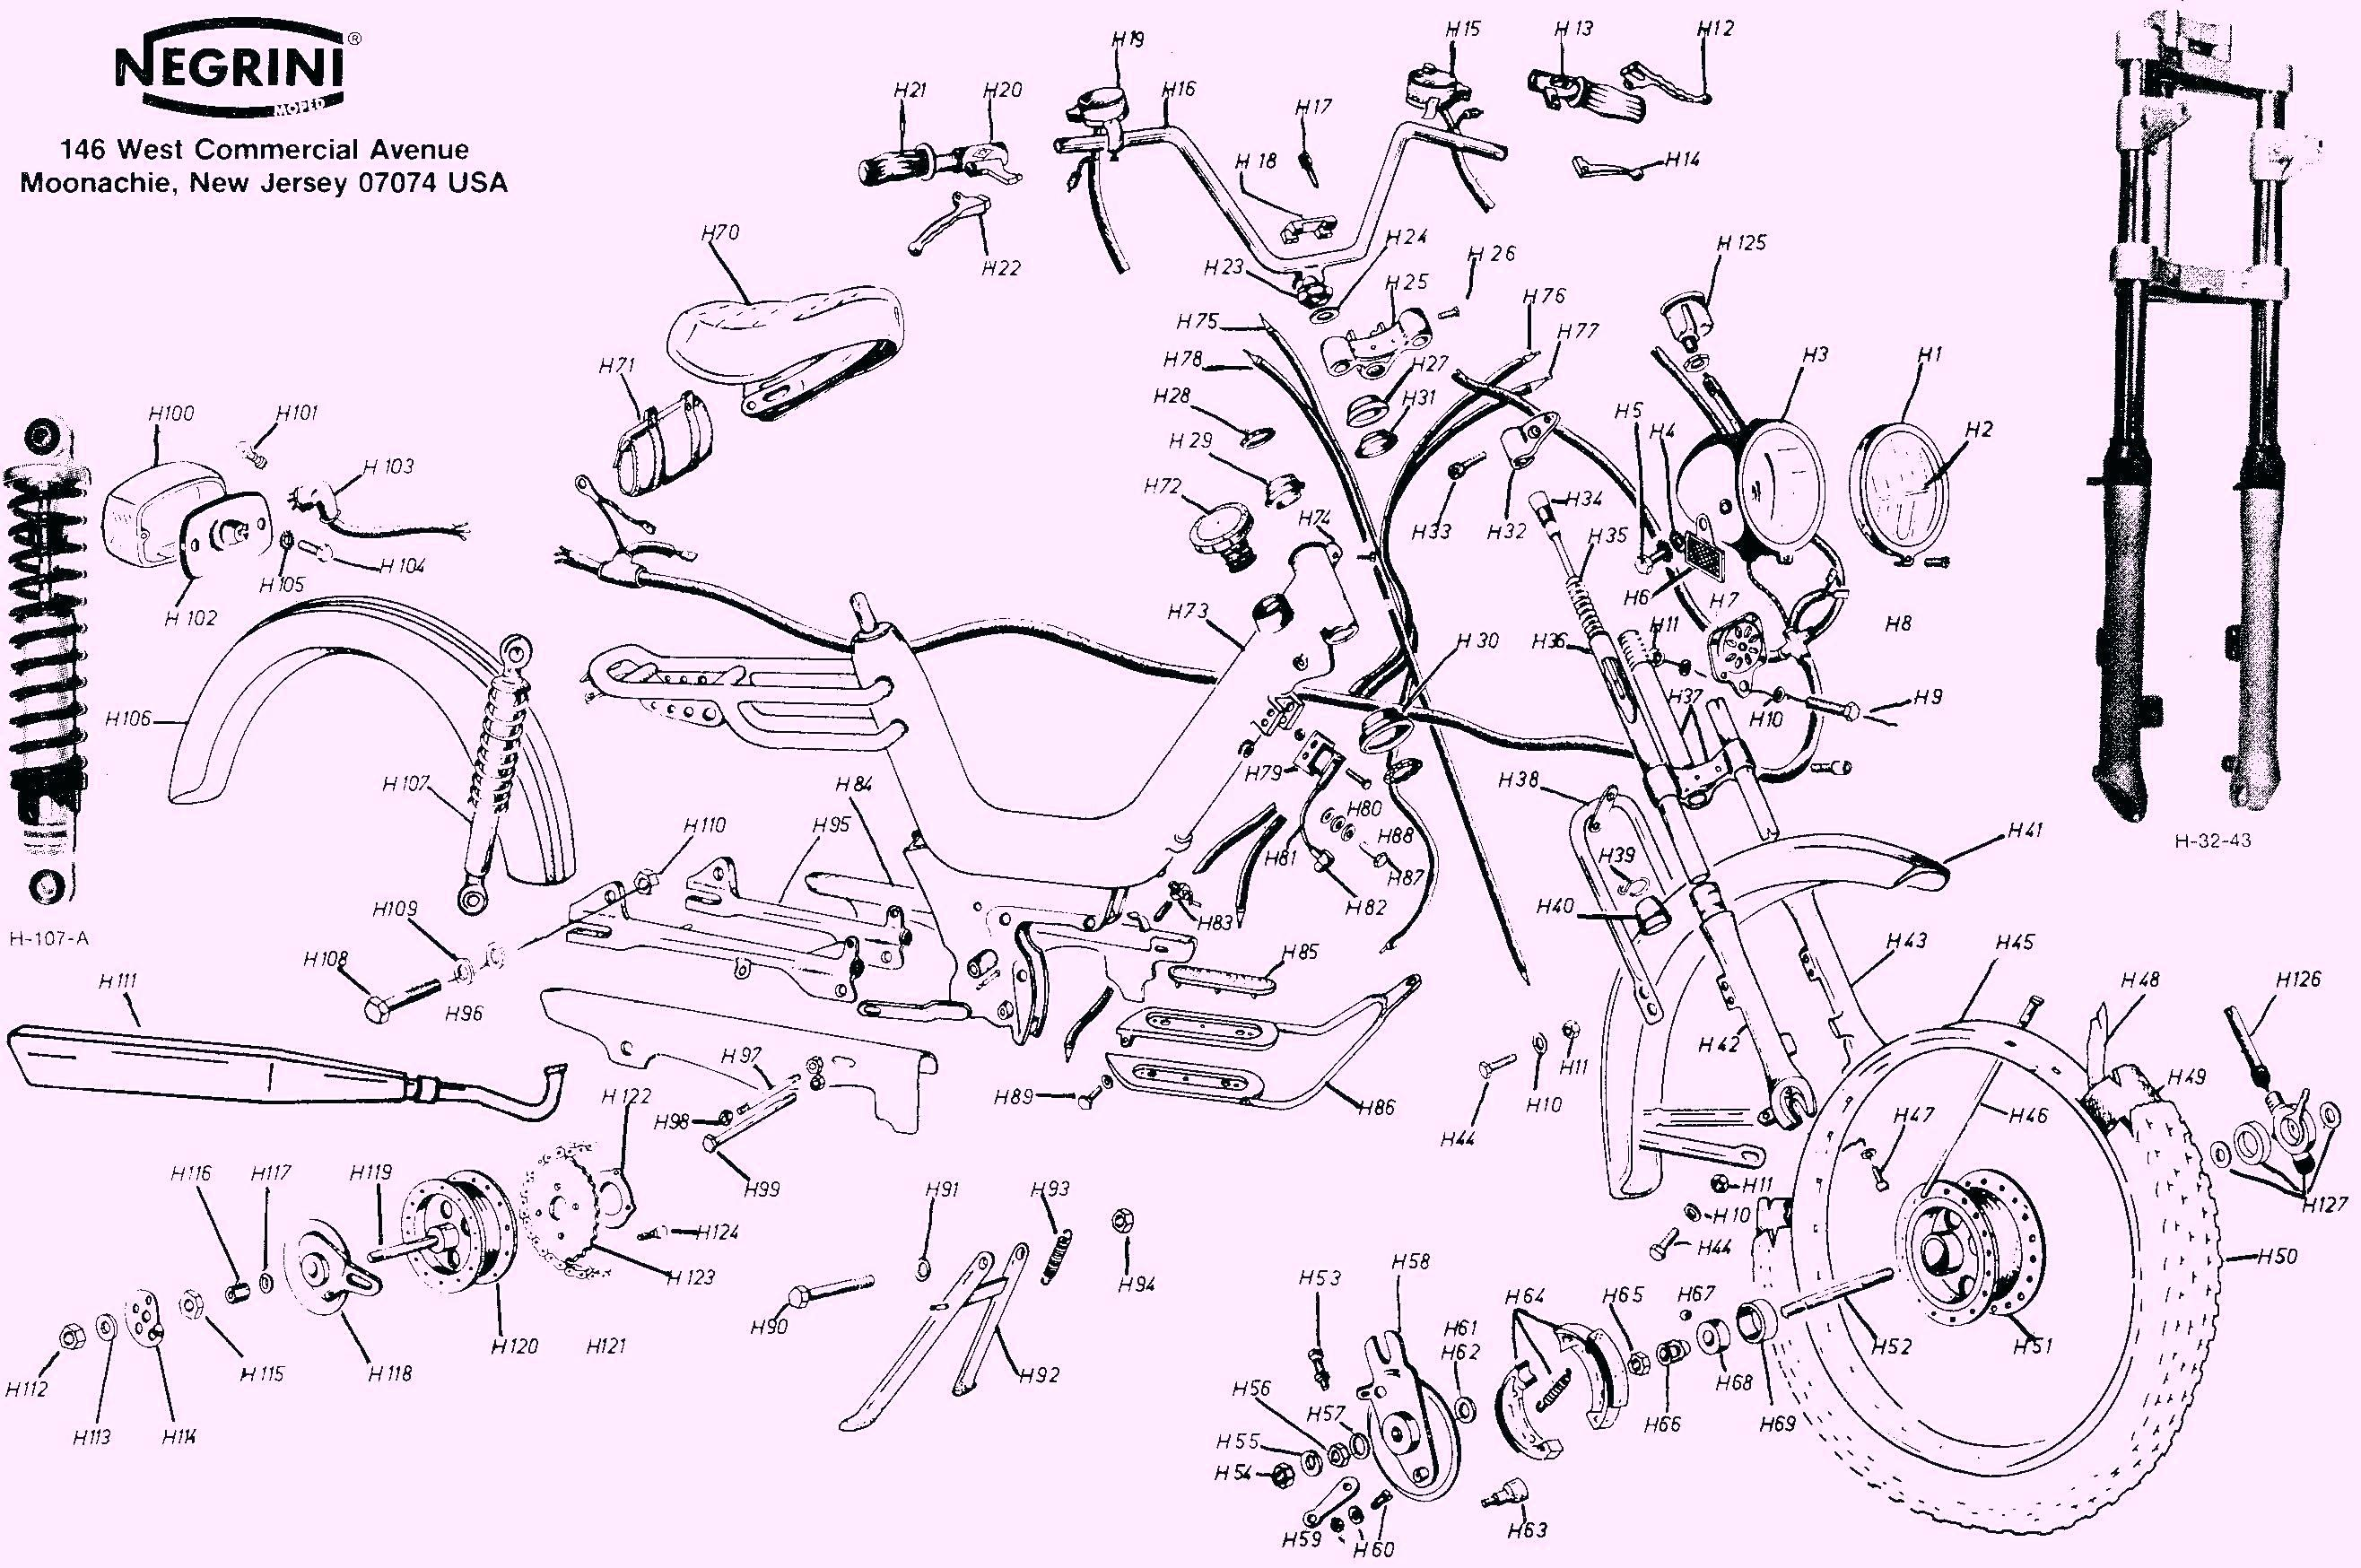 Engine Parts Drawing At Free For Personal Use 2012 Cruze Diagram 2632x1748 Chevy 14 Moped New Mopeds Page Wiring